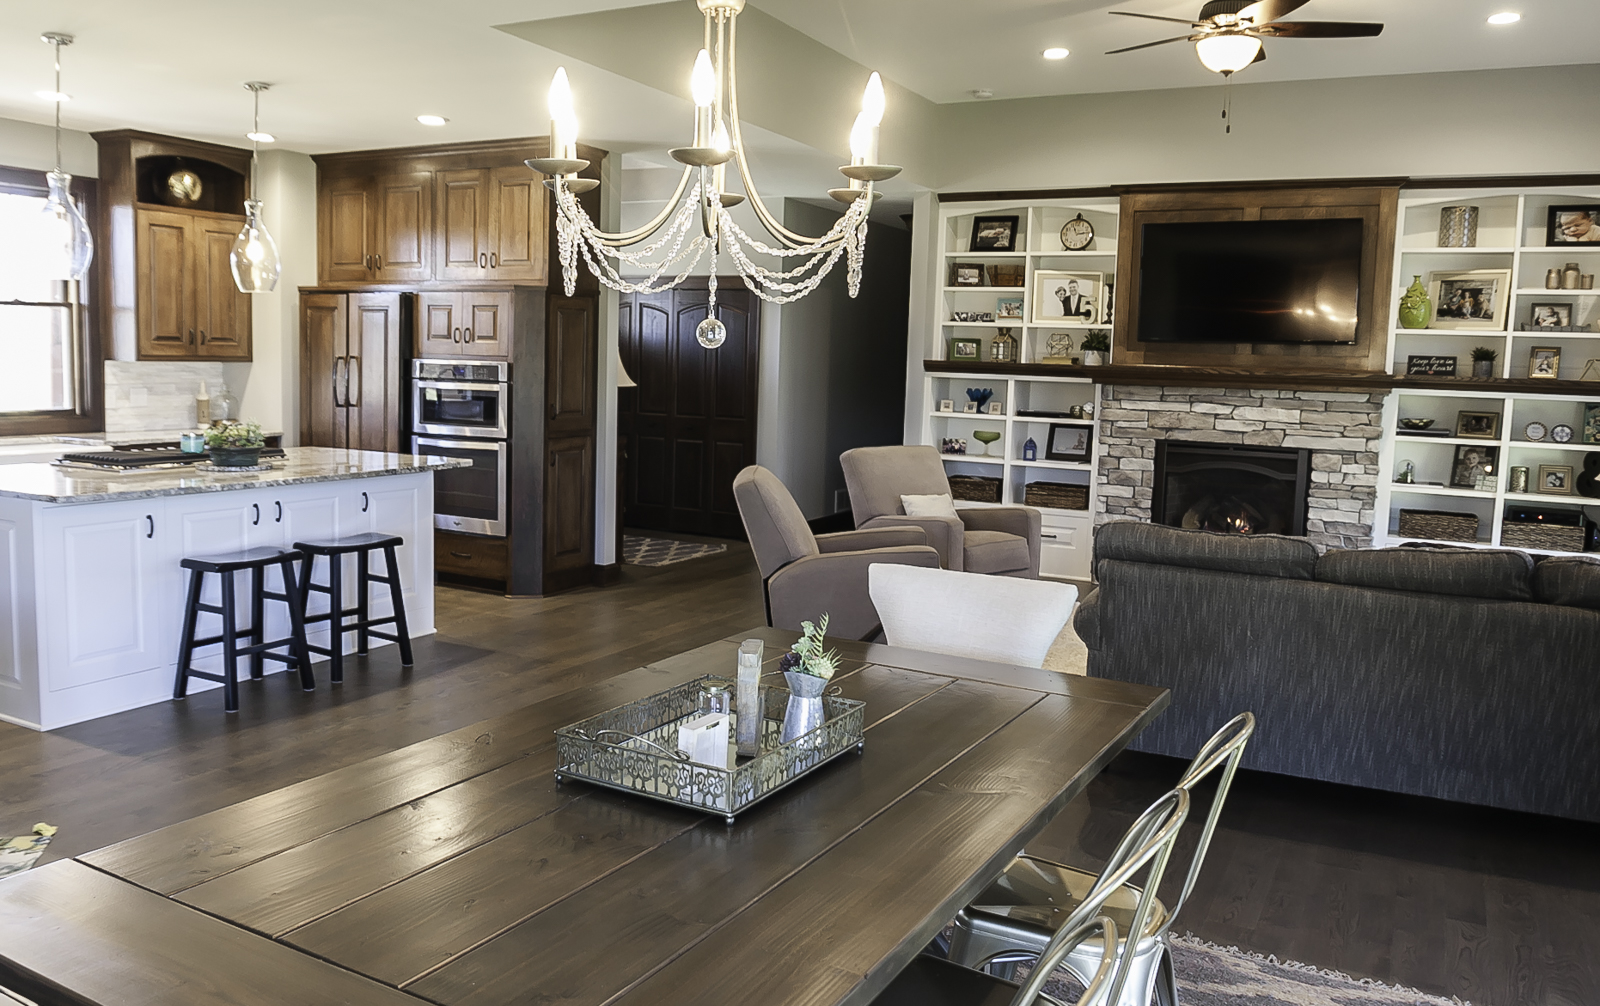 Unique And Timeless For Everyday Living, Franklin Builders Can Make Your Dream  Design A Reality.